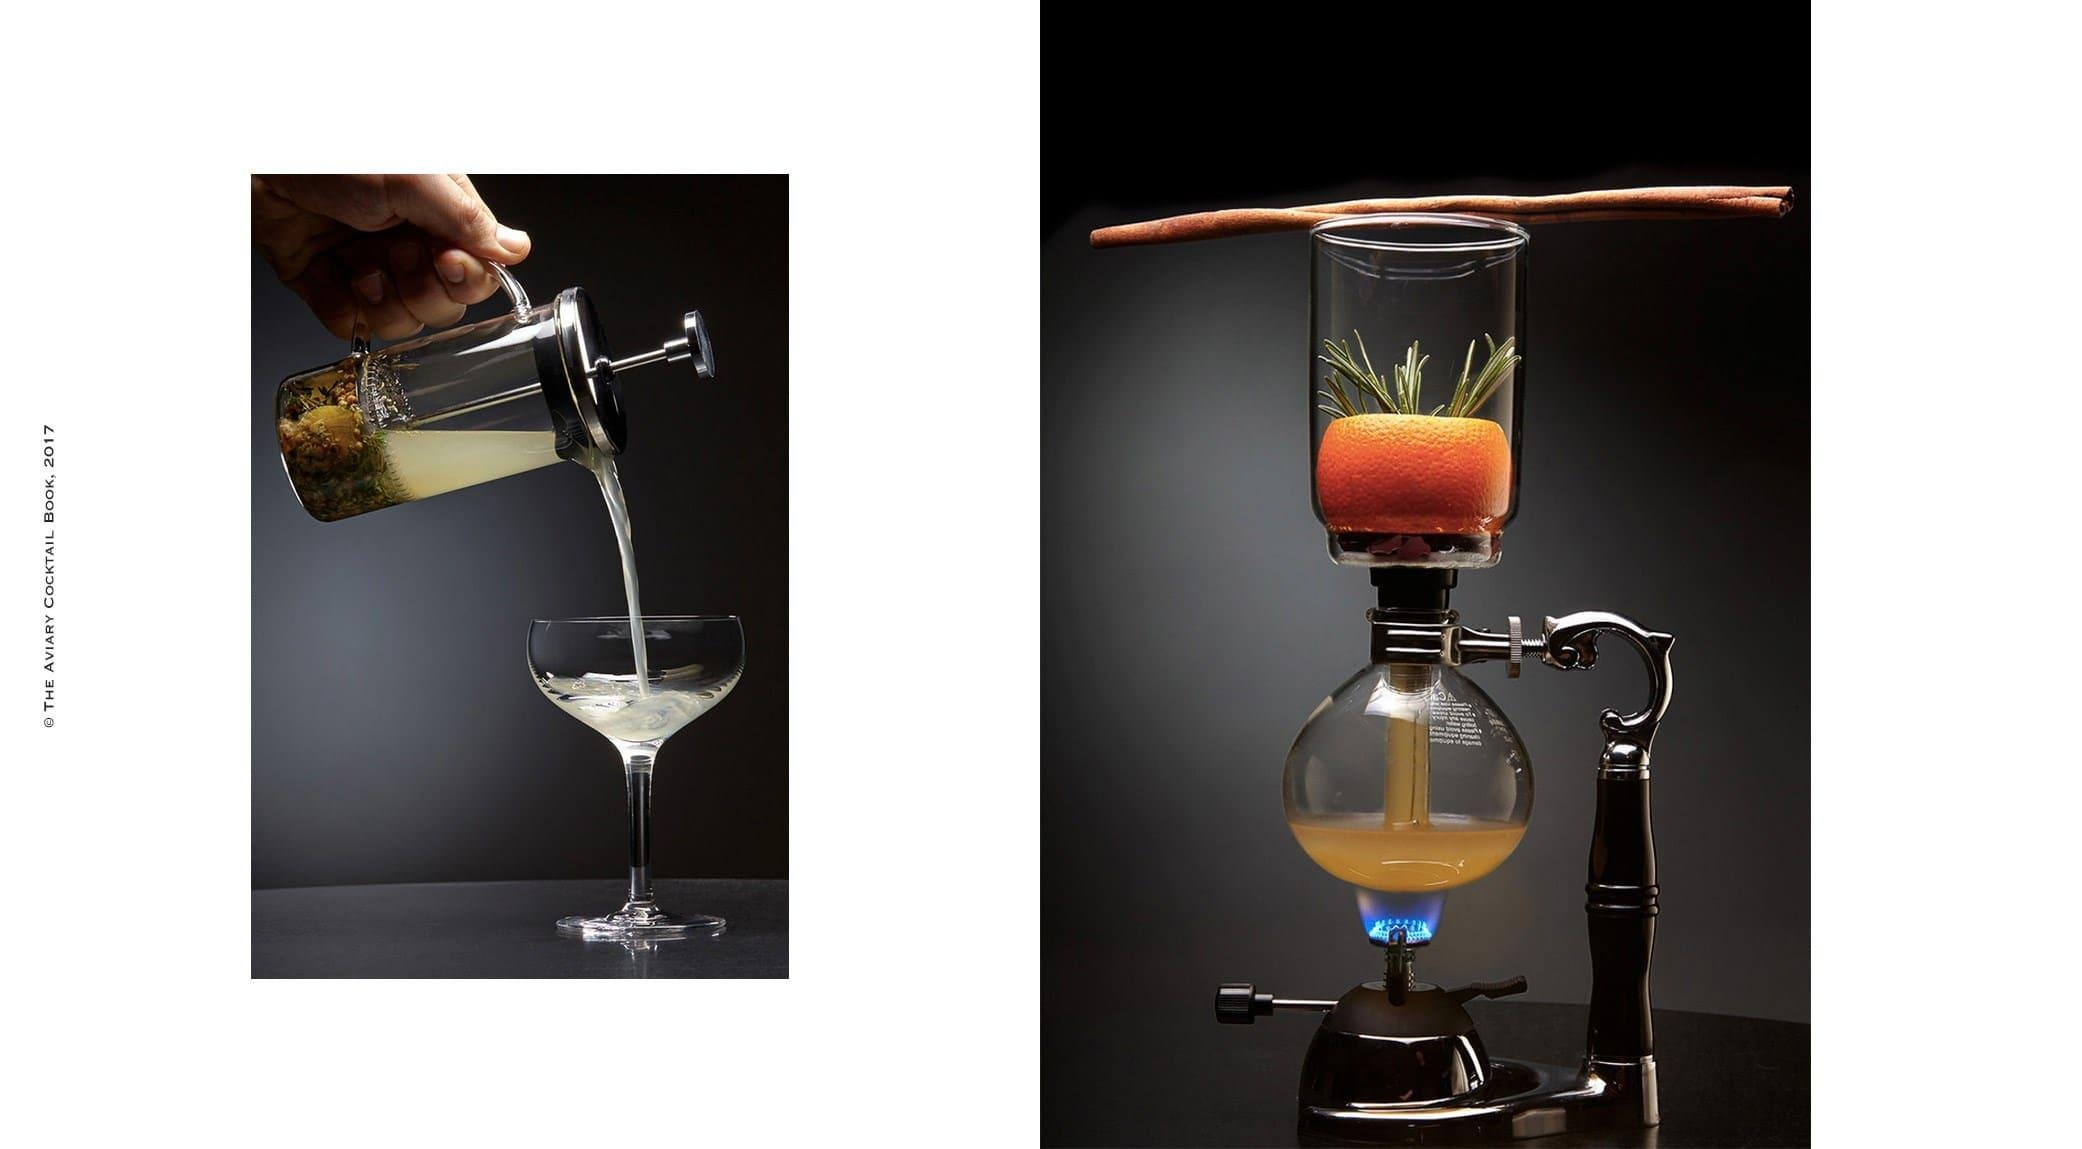 original_The-Aviary-Cocktail-Book-05.jpg